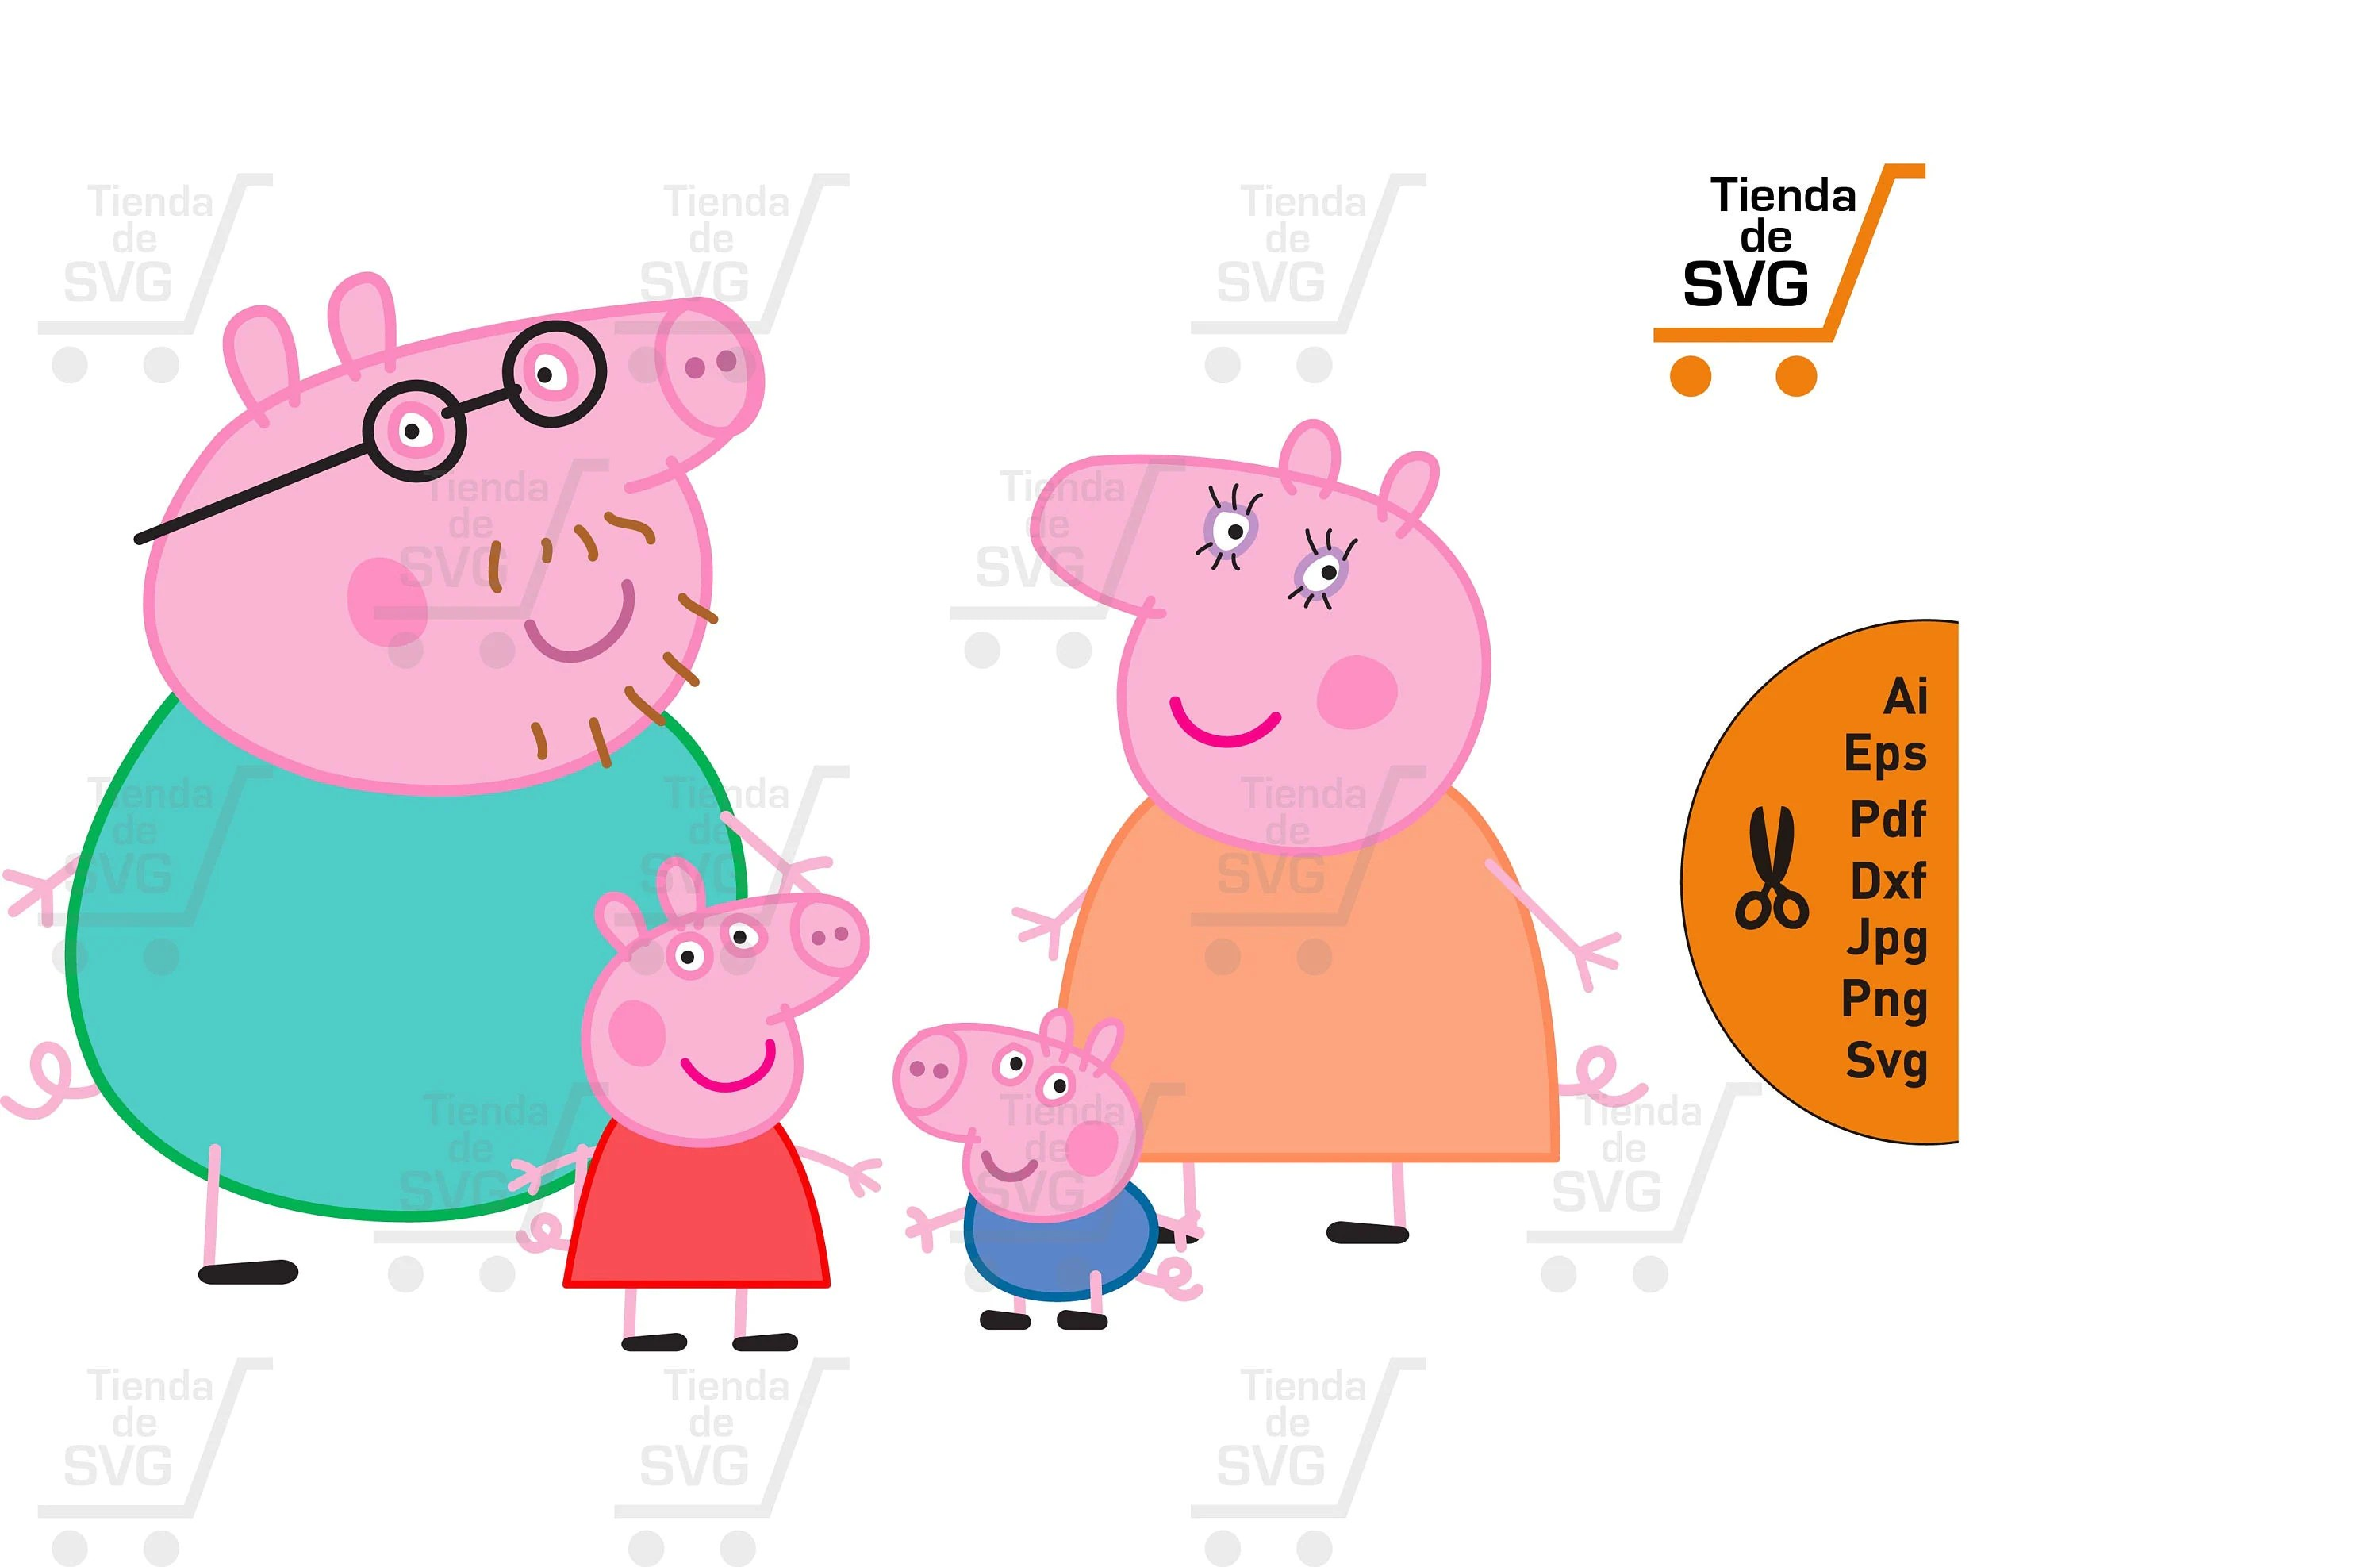 The public investment fund (pif; PEPPA PIG family svg peppa pig svg peppa pig family svg